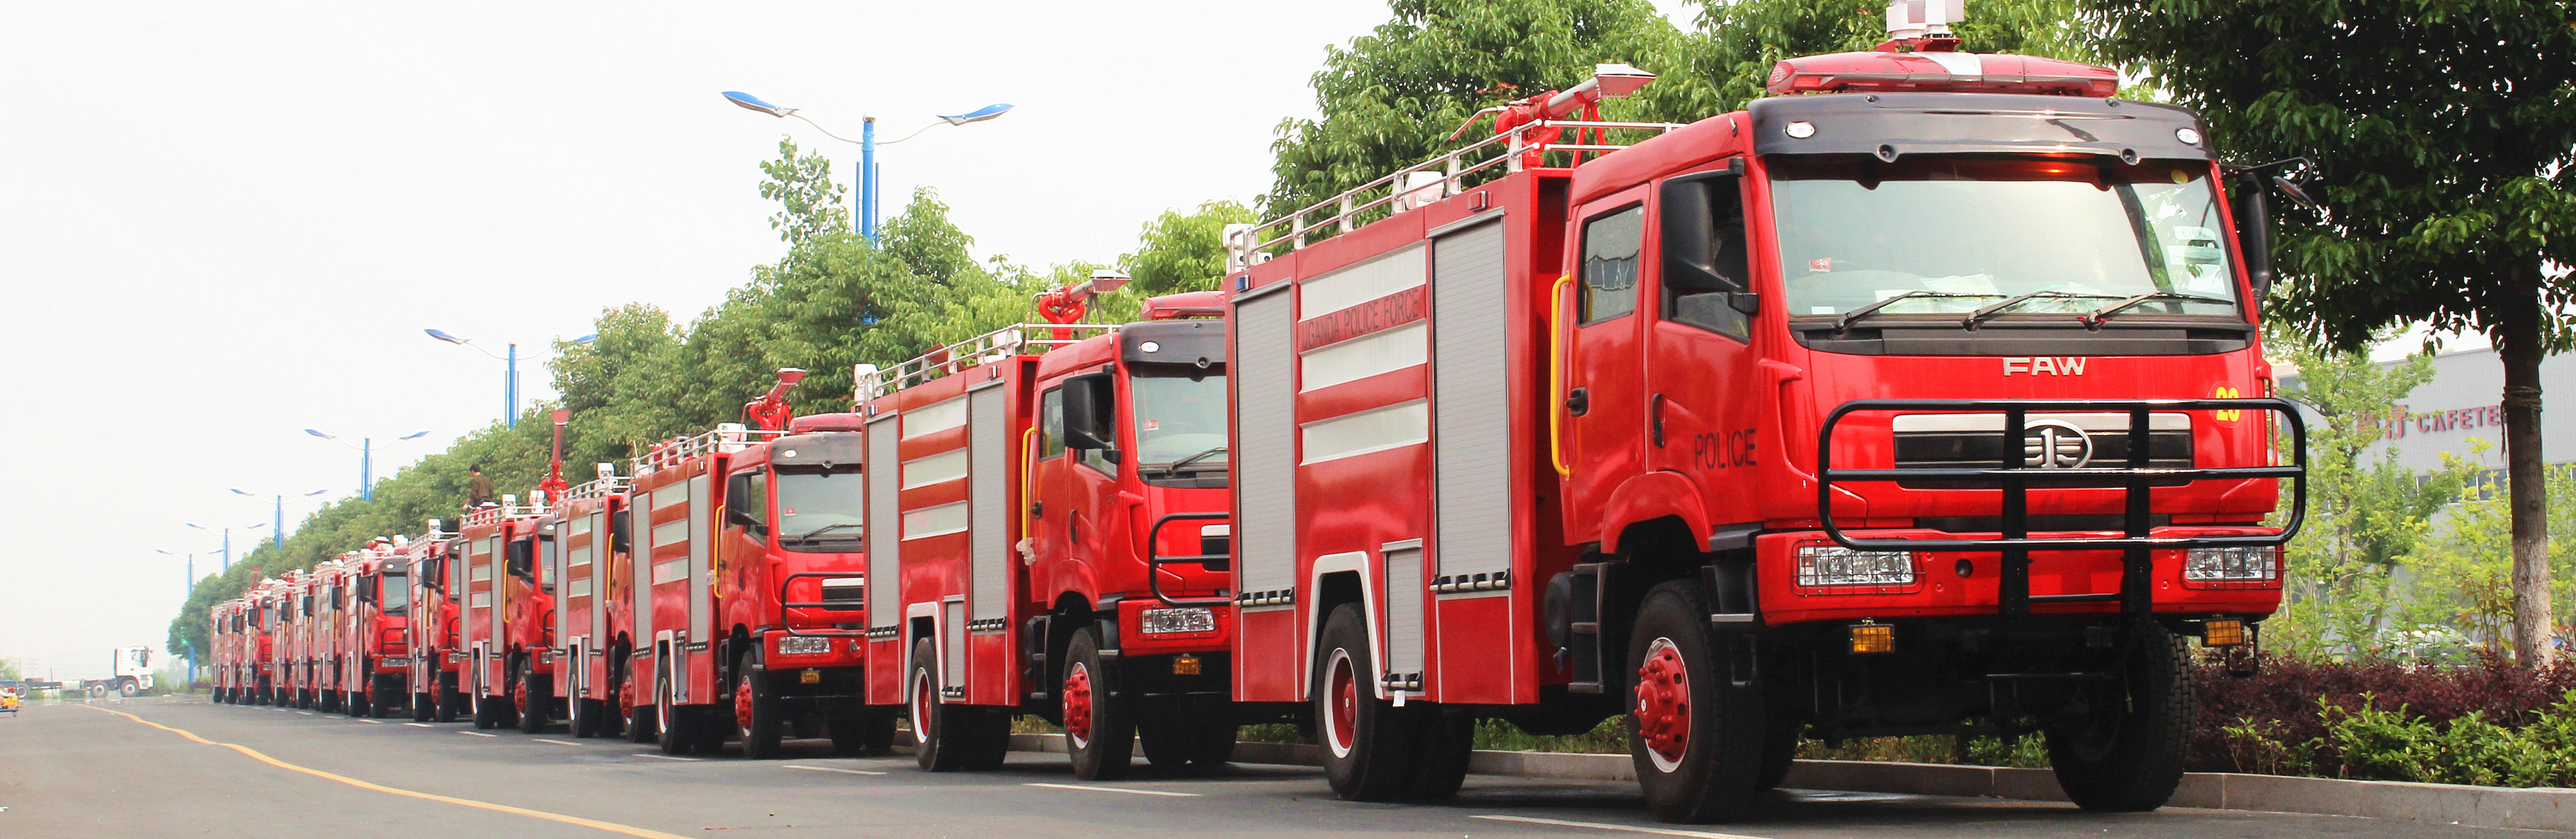 FAW RHD firefighting trucks supplier